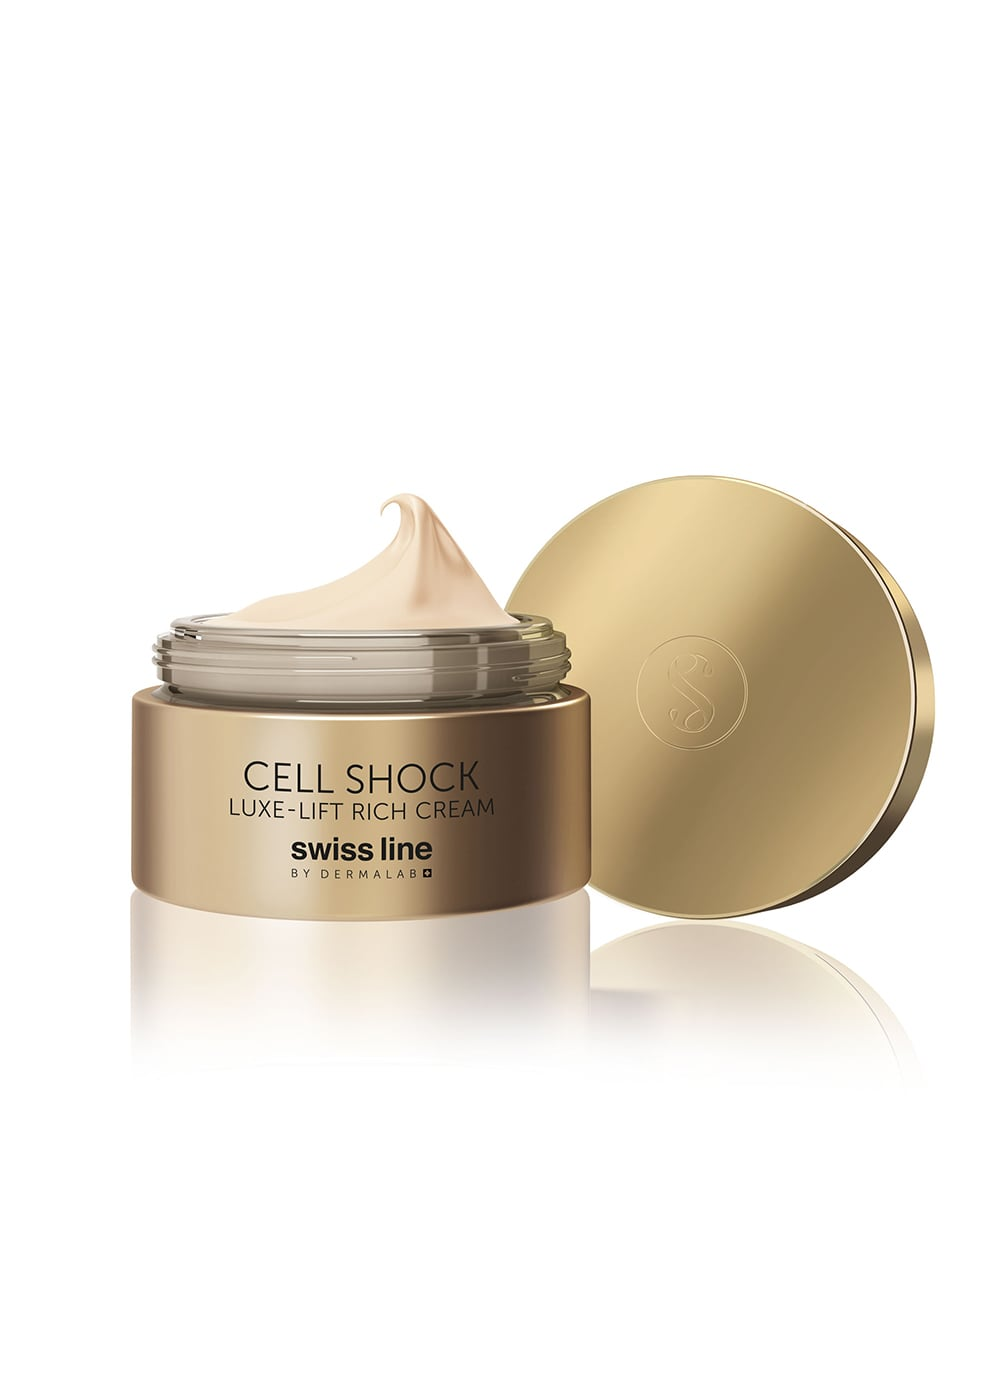 Swiss Line Cell Shock Luxe-Lift Rich Cream